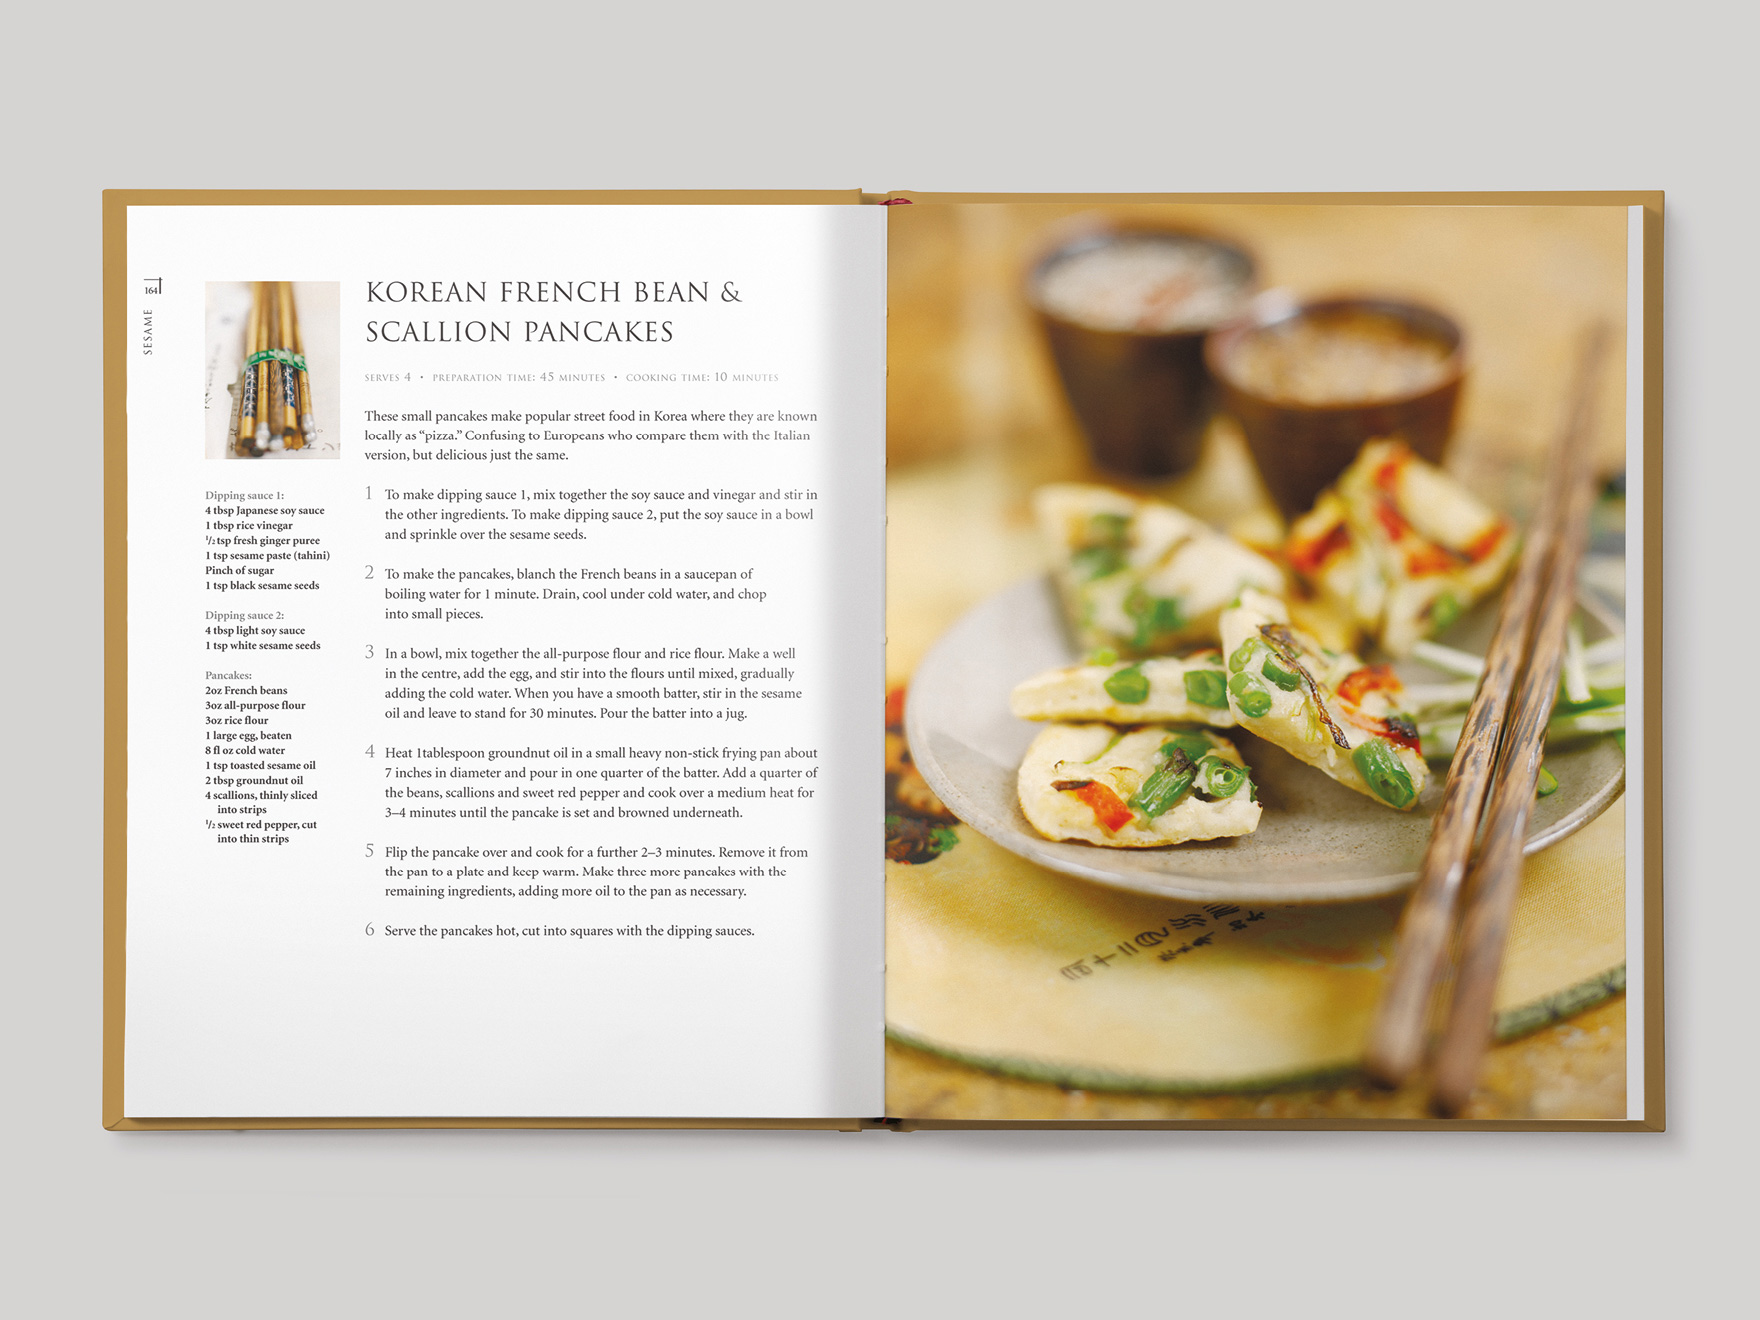 Inside book pages from Asian Flavours showing a recipe for Korean French bean and scallion pancakes